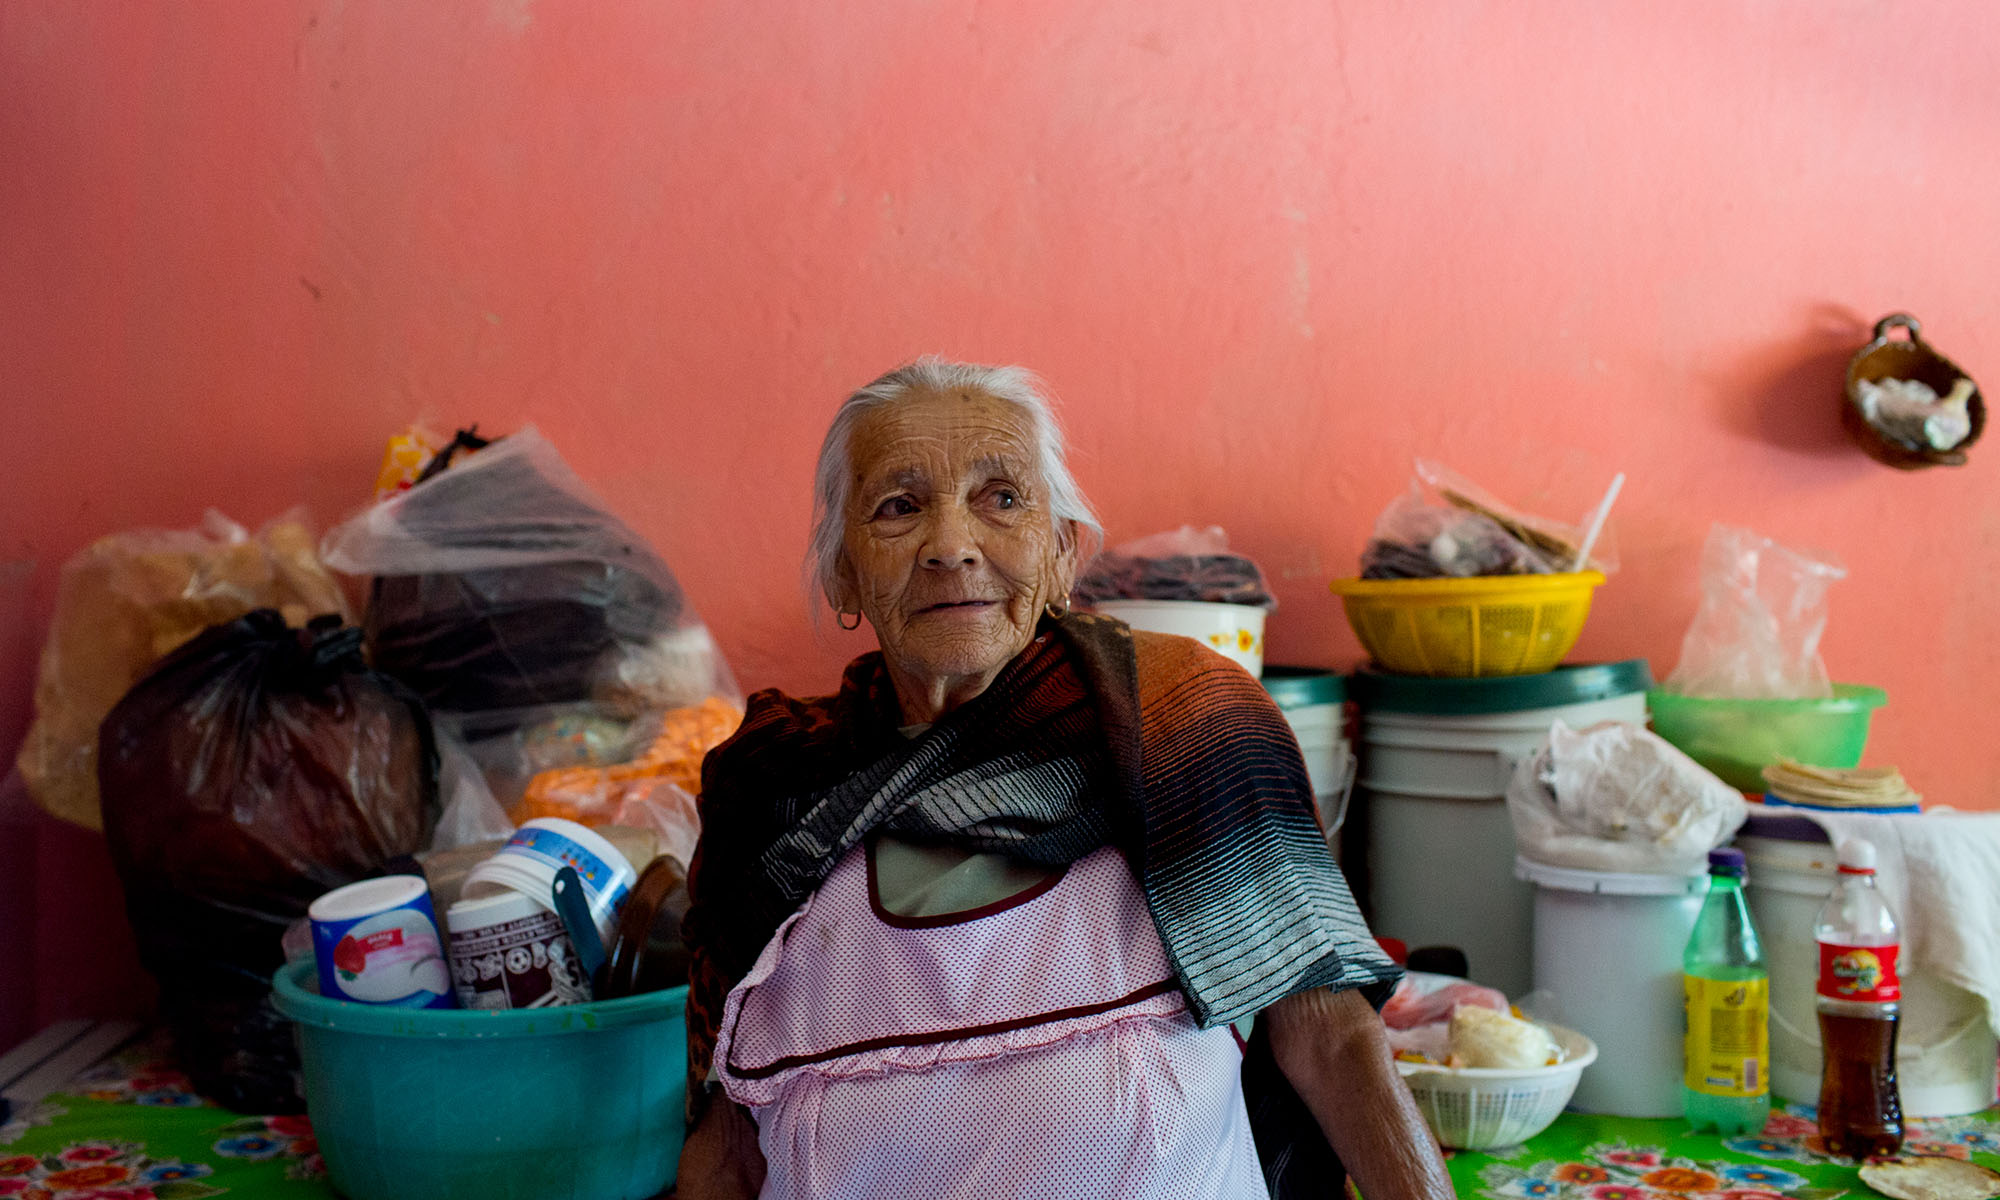 """Rojas in her kitchen. She does no longer works and she and her husband rely heavily on remittances from their children, in addition to a little government support. Her children crossed the border in the 1980s, became legal, documented immigrants during the Reagan administration and are now U.S. citizens with their own American grandchildren. Rojas has about 15 grandchildren and great-grandchildren who are U.S. citizens, including one who did military service. Because the family can cross the border legally, they are able to visit and were home at Christmas, but Rojas wishes she could see them more. """"One day I'm going to die, one day, and I'm not going to see my children anymore,"""" Rojas said. (Photo by Courtney Pedroza/Cronkite Borderlands Initiative)"""